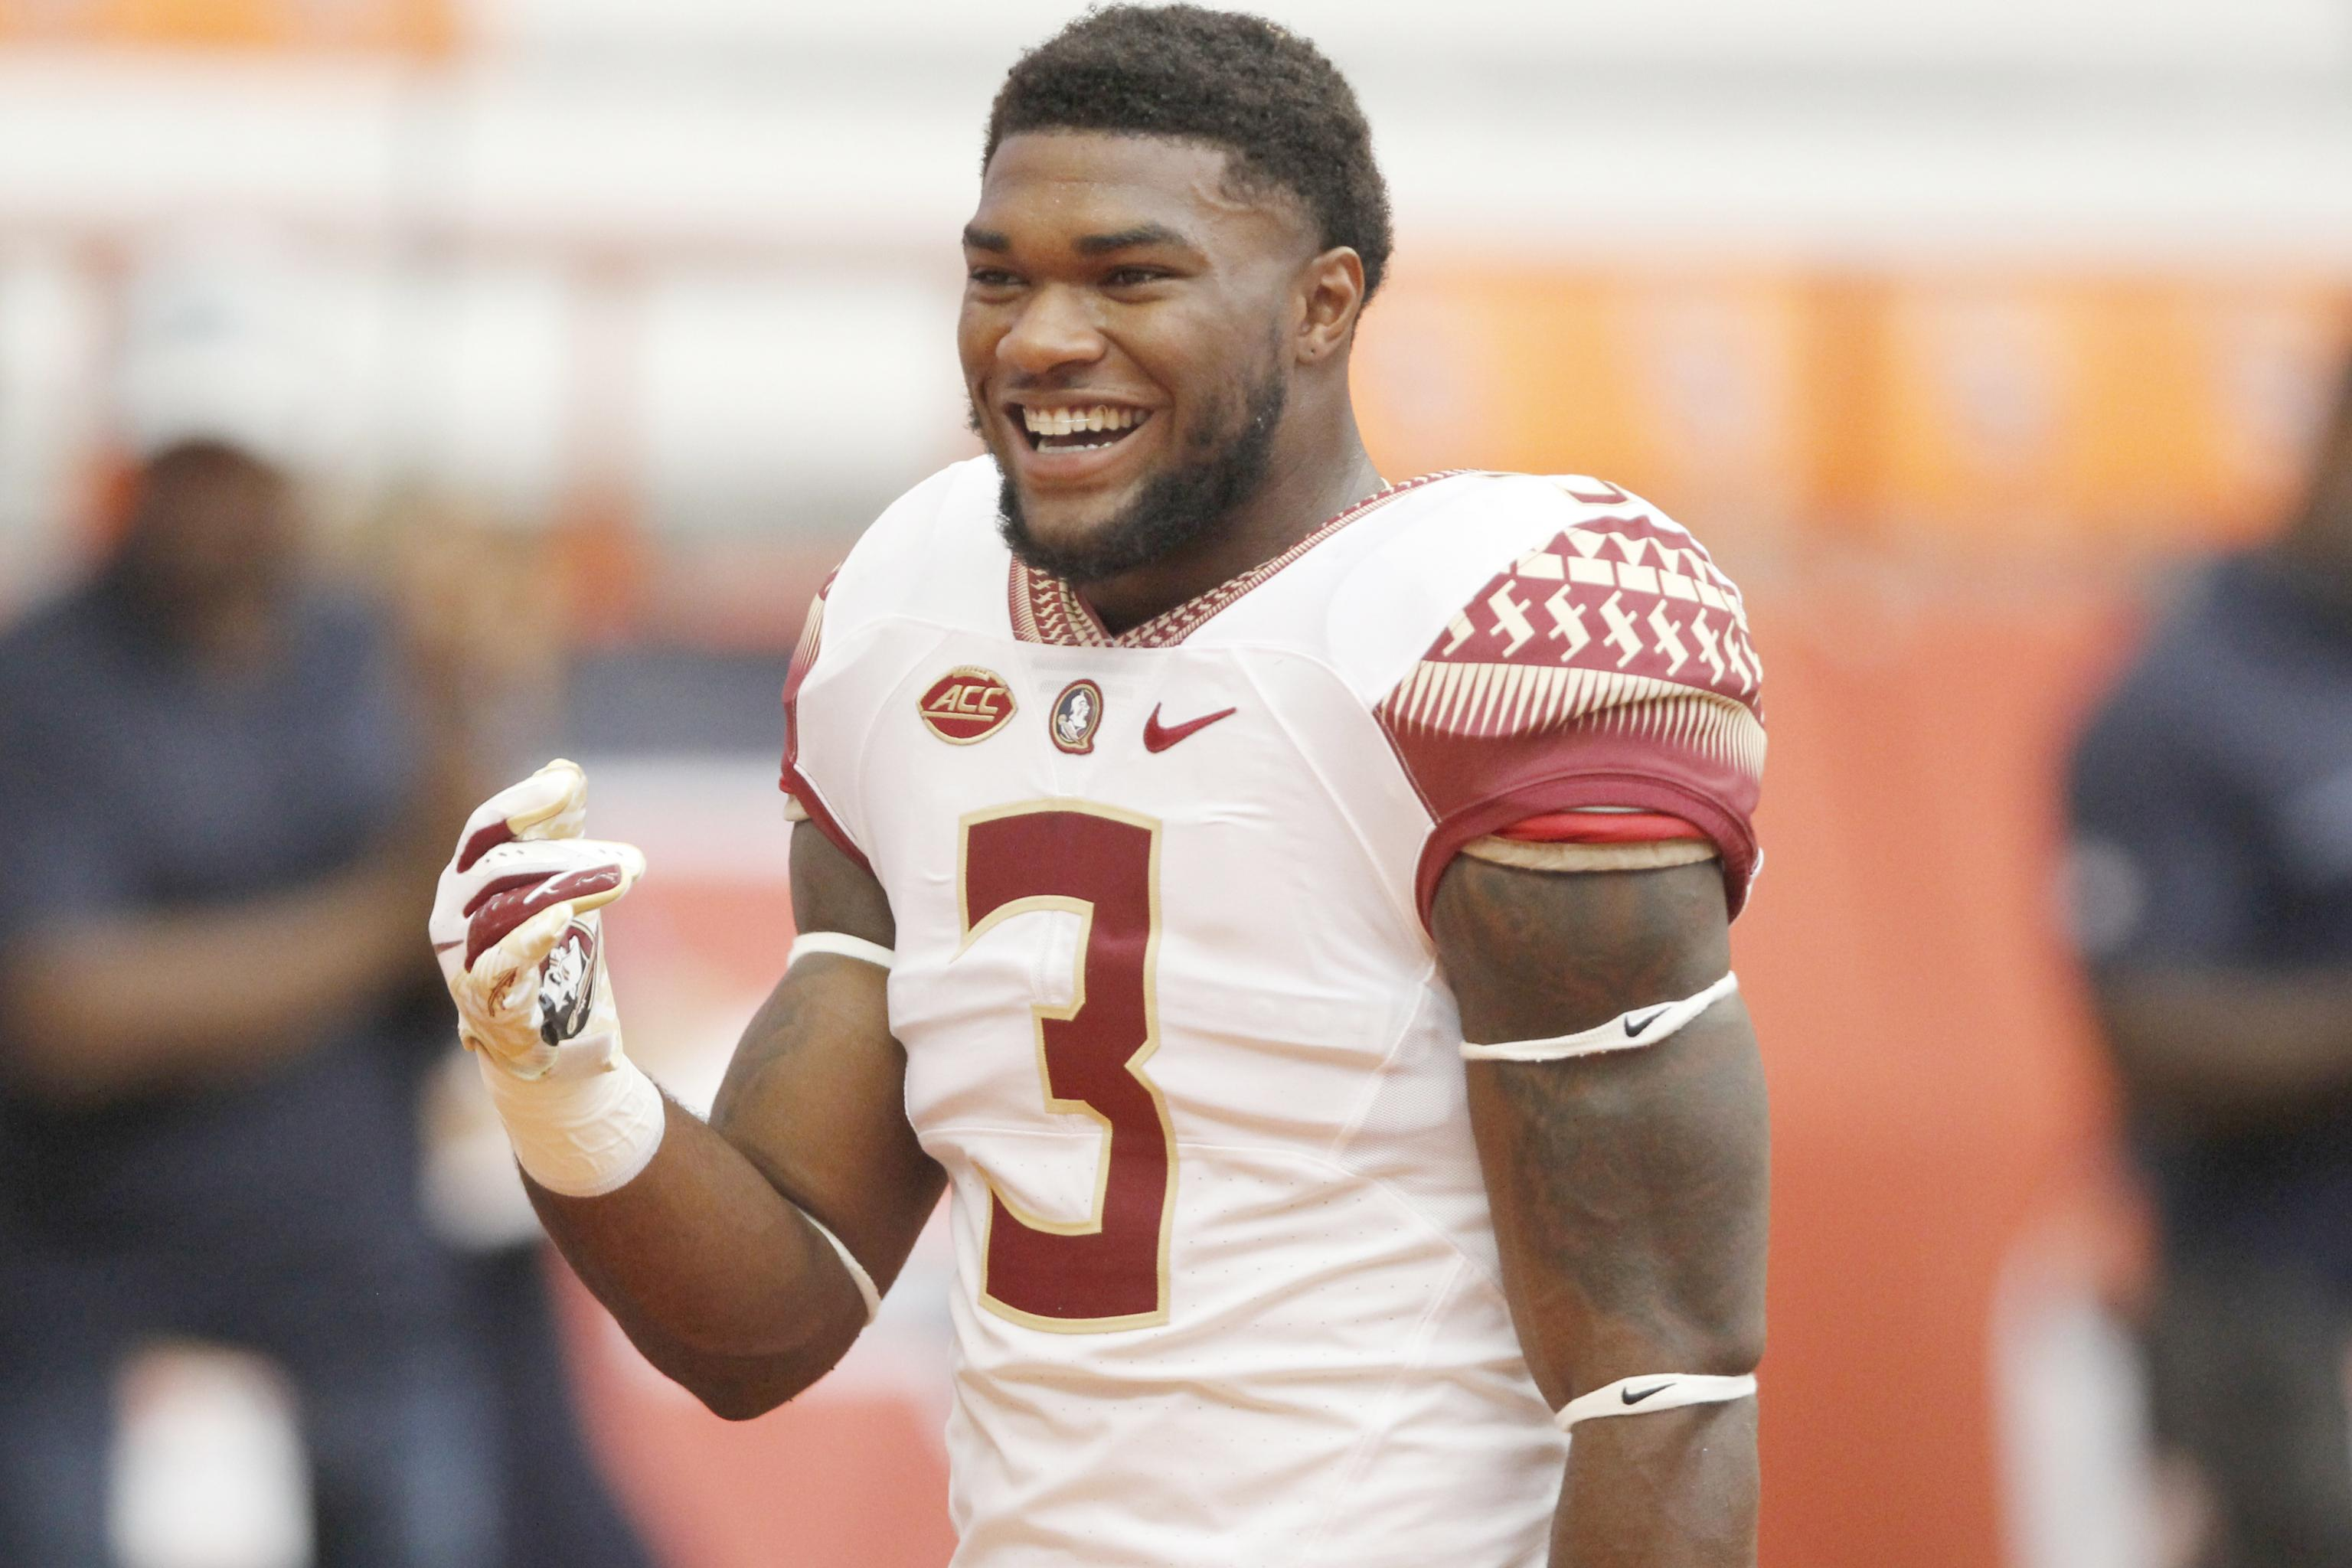 Cam Akers Drafted By Rams Los Angeles Updated Depth Chart After Round 2 Bleacher Report Latest News Videos And Highlights